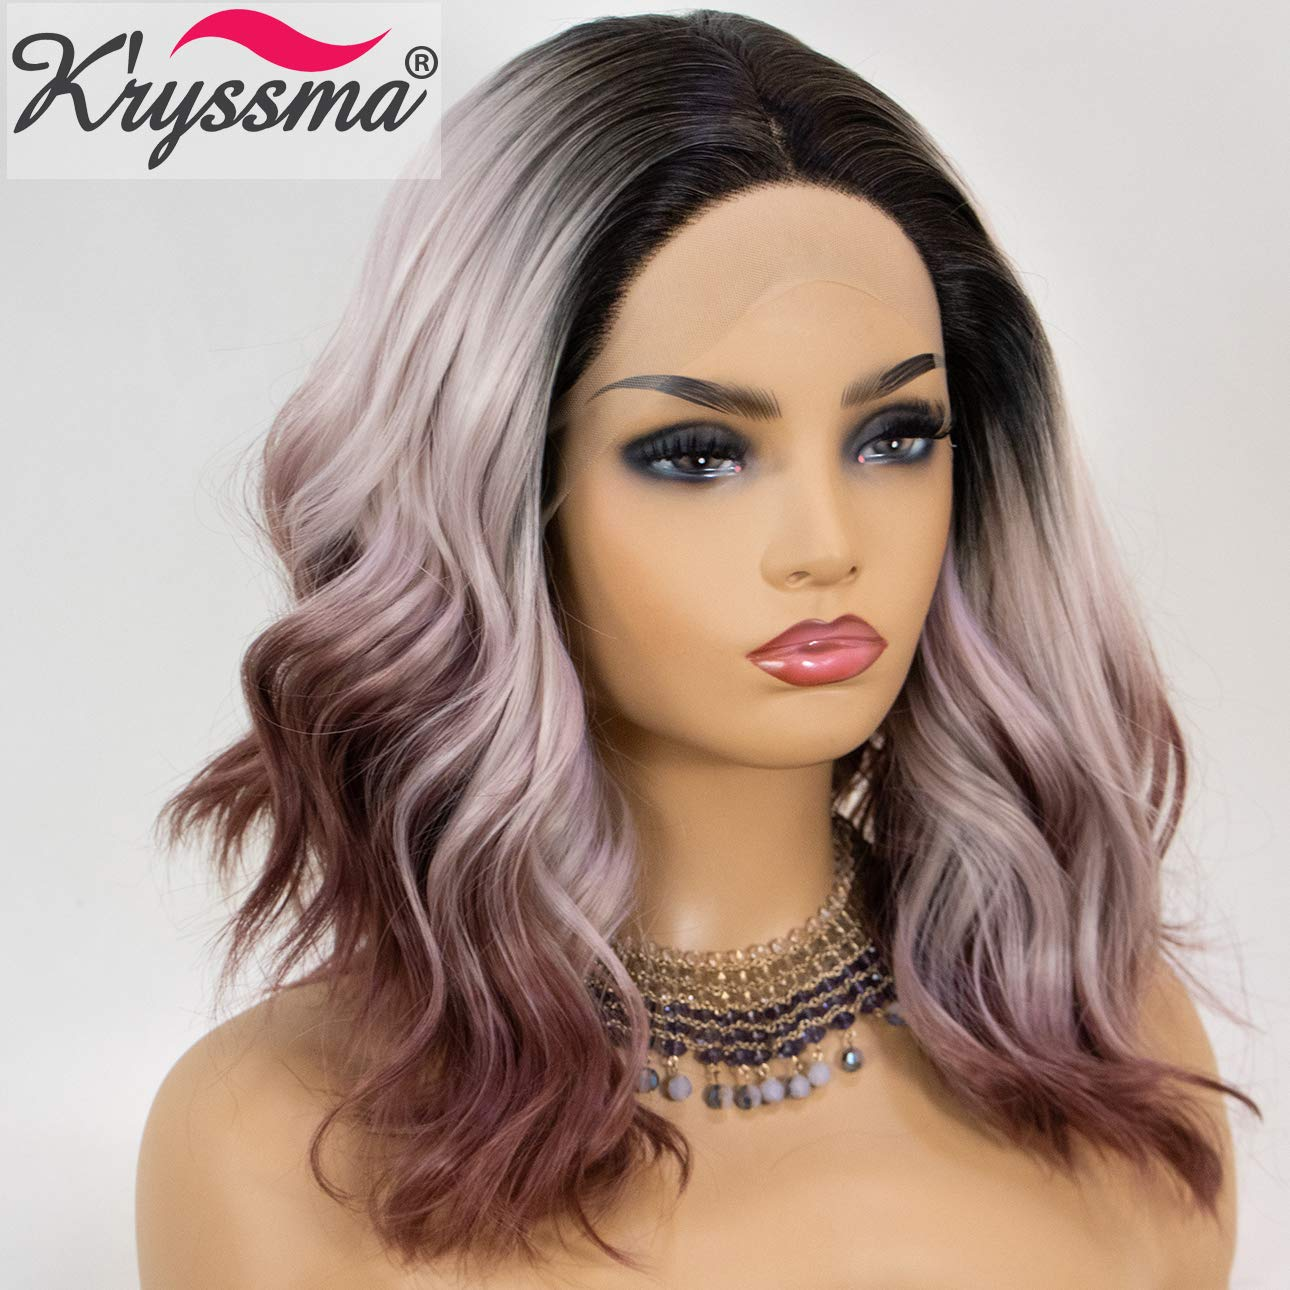 K'ryssma 3 Tone Ombre Lace Front Wig Colorful